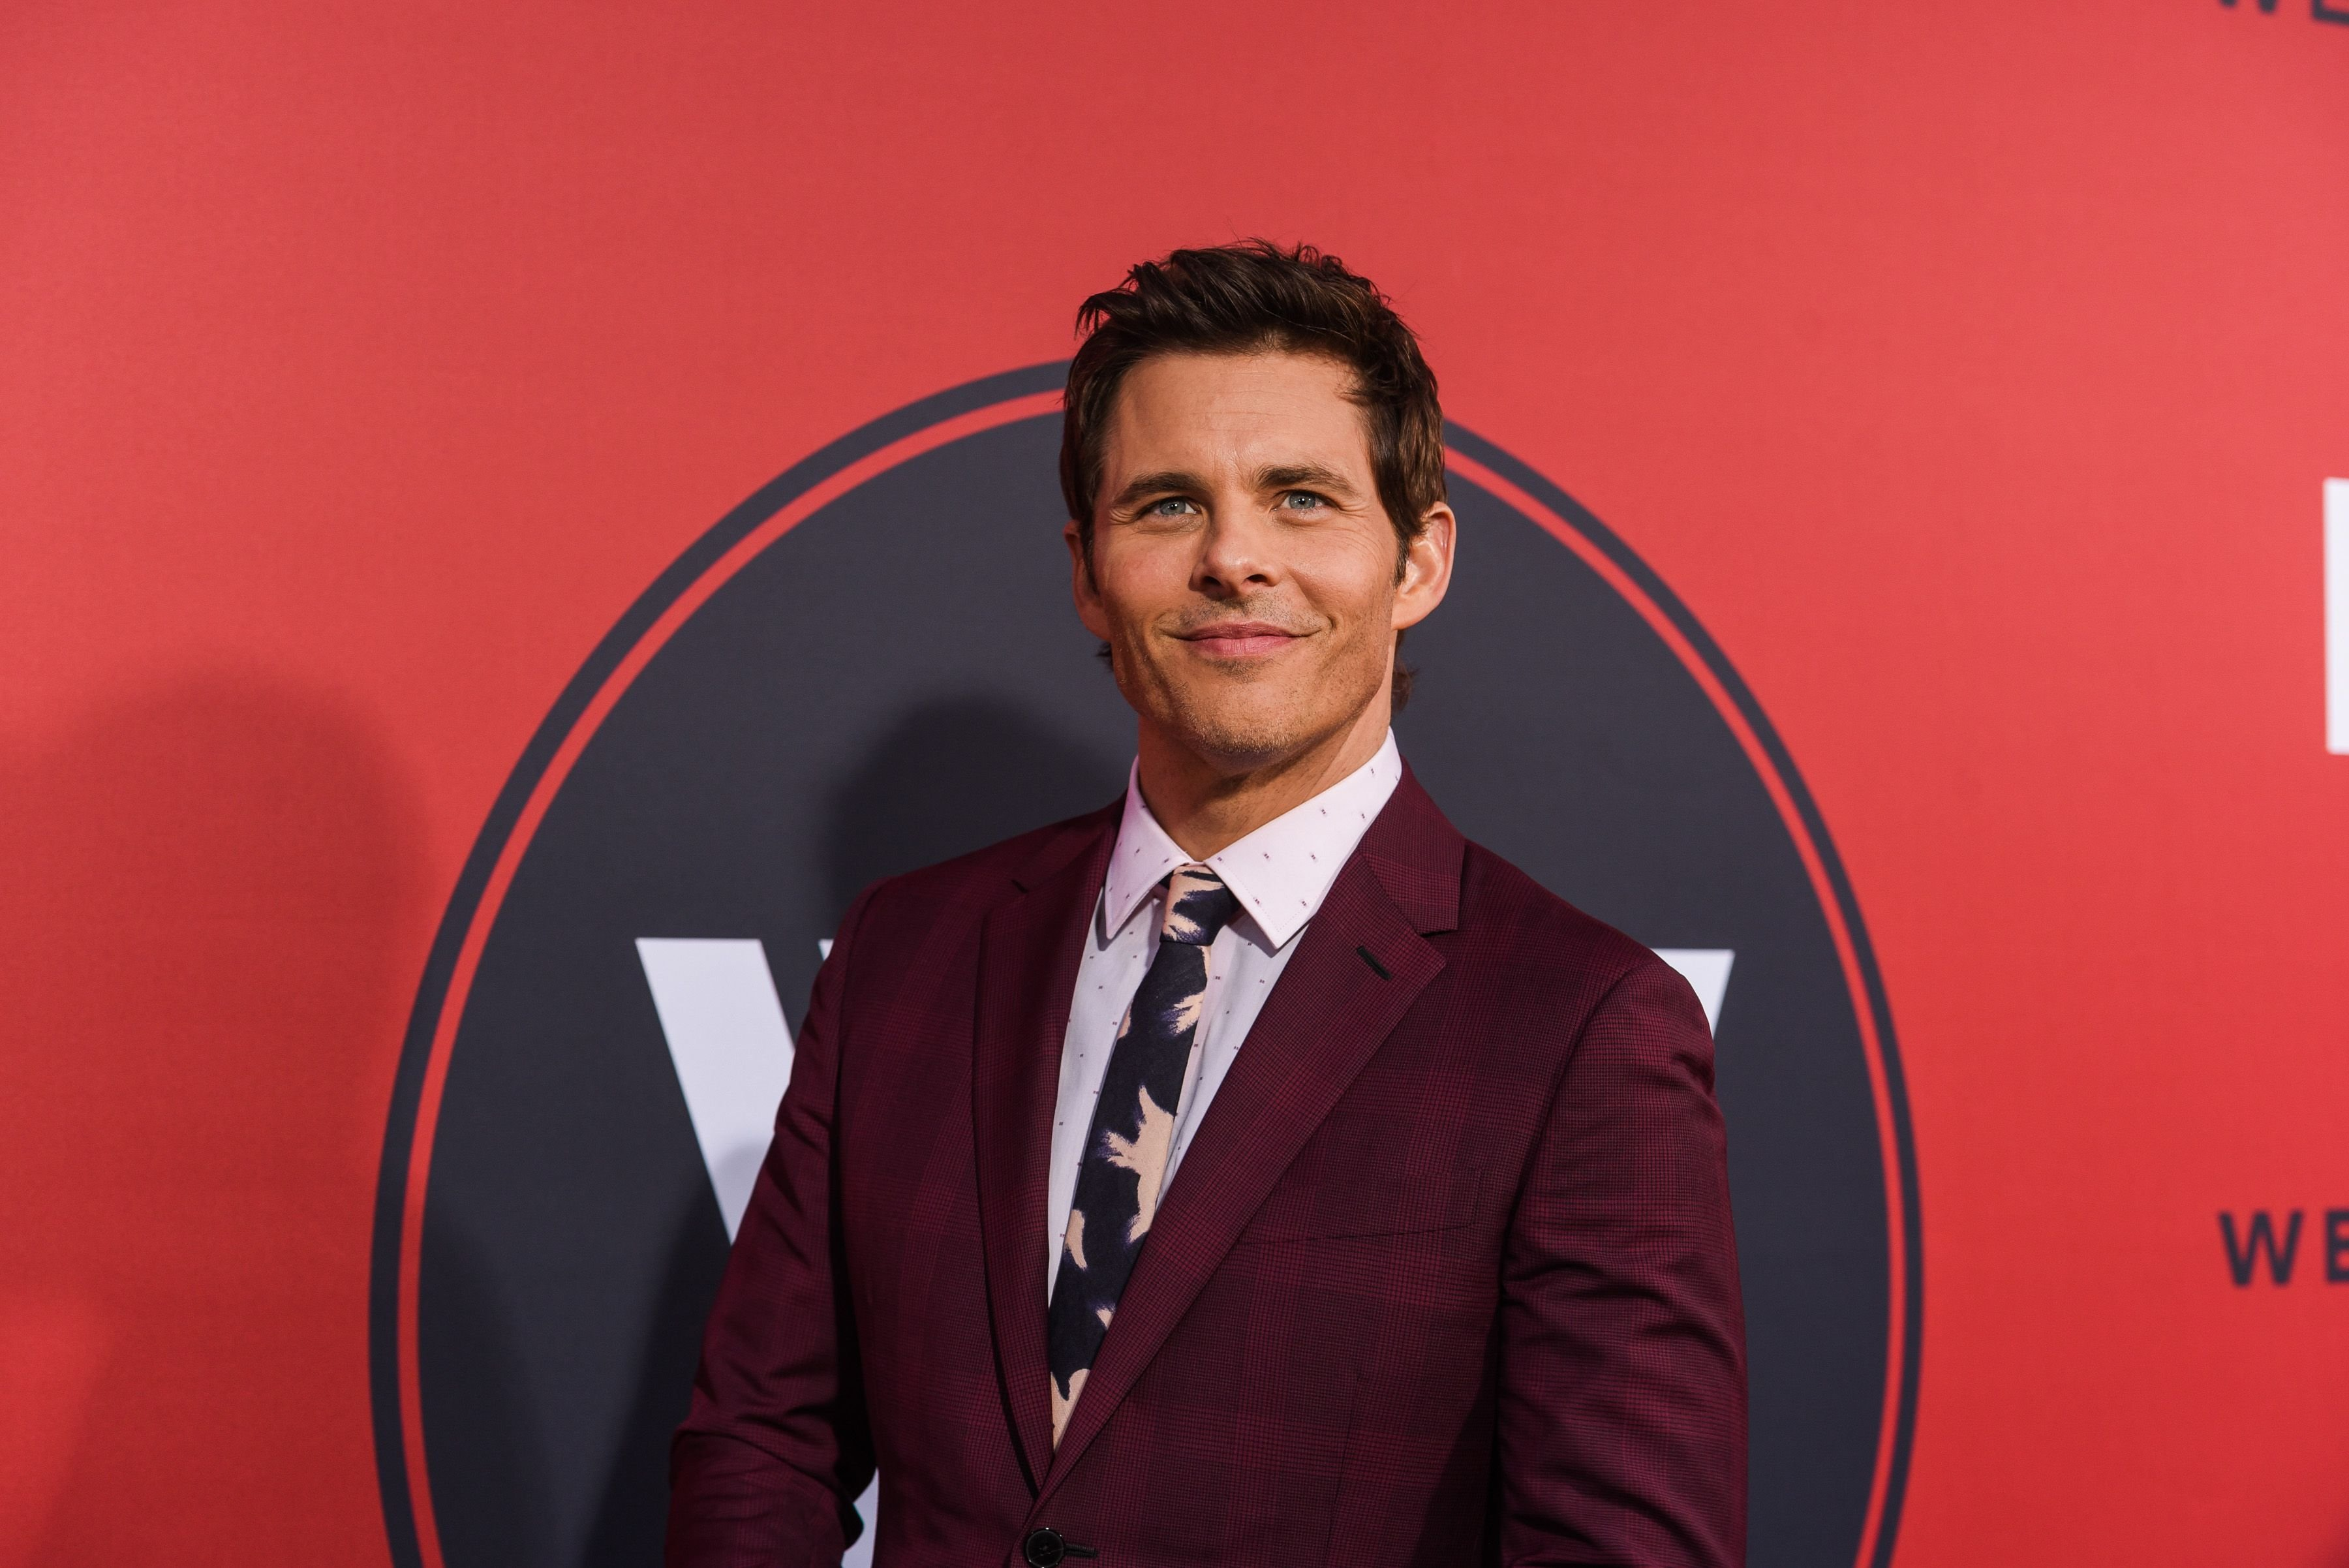 """James Marsden at the Season 2 premiere of """"Westworld"""" in Los Angeles on April 16, 2018   Photo: Getty Images"""